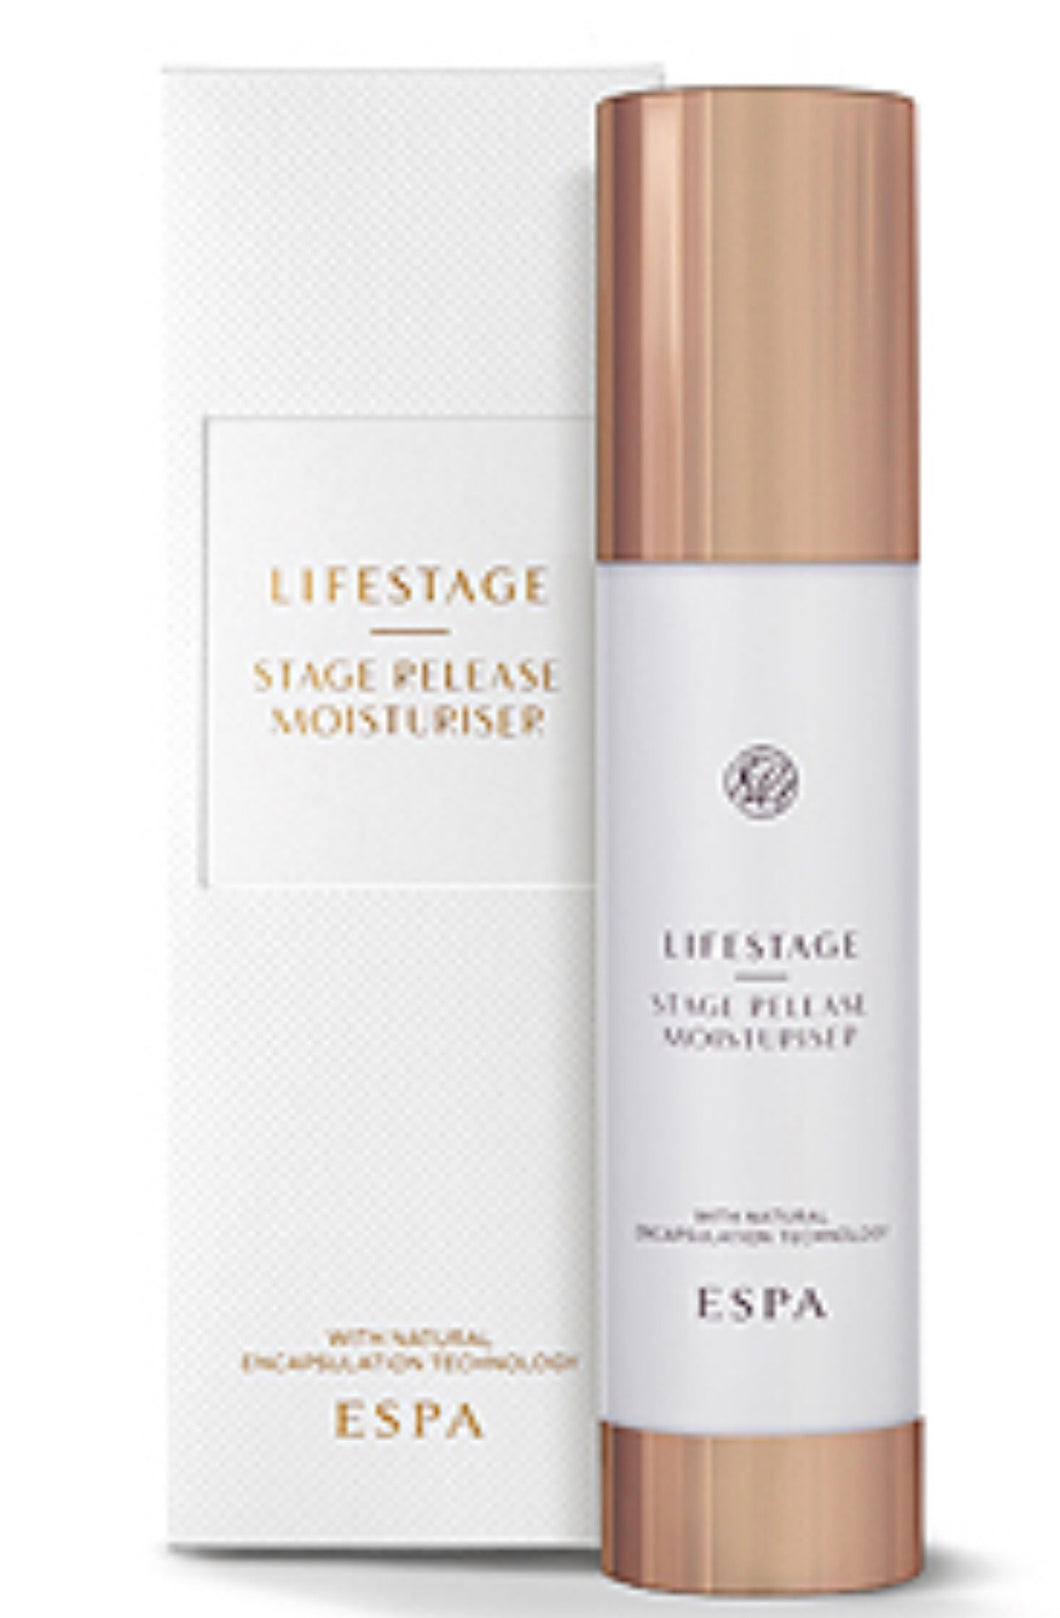 ESPA Lifestage Stage Release Eye Moisturiser 15ml